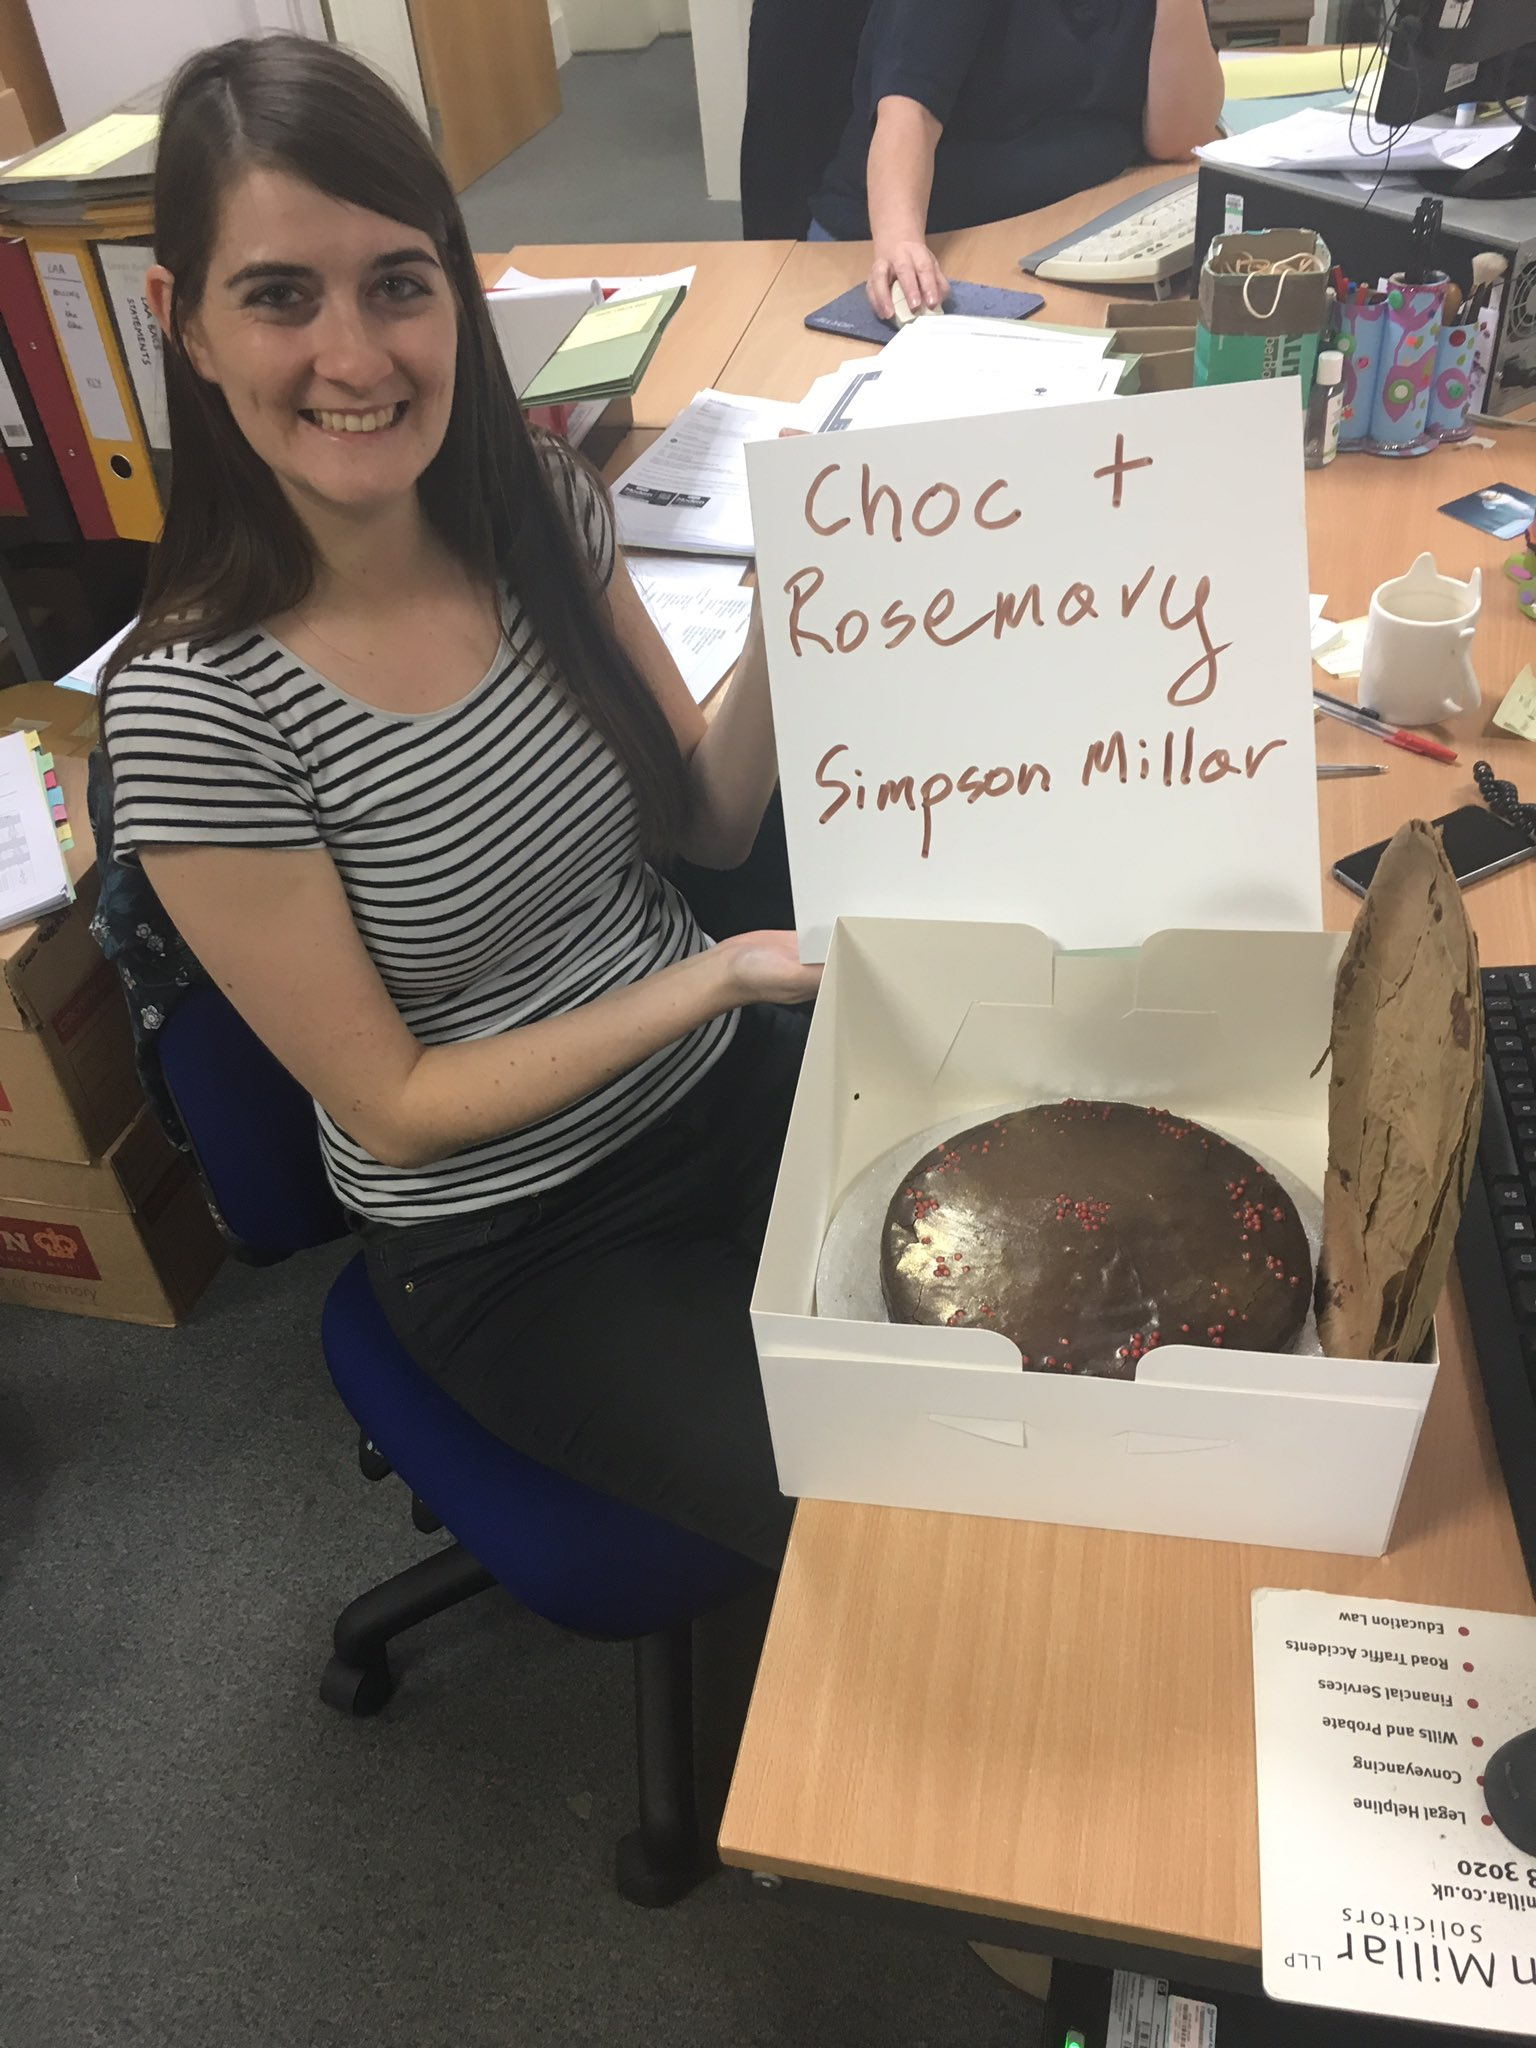 Delish rosemary & choc cake delivered to us by the @PrisonersAdvice - thanks from the @SM_EduComCare team! #greatlegalbake @greatlegalbake https://t.co/warmpAKrhm